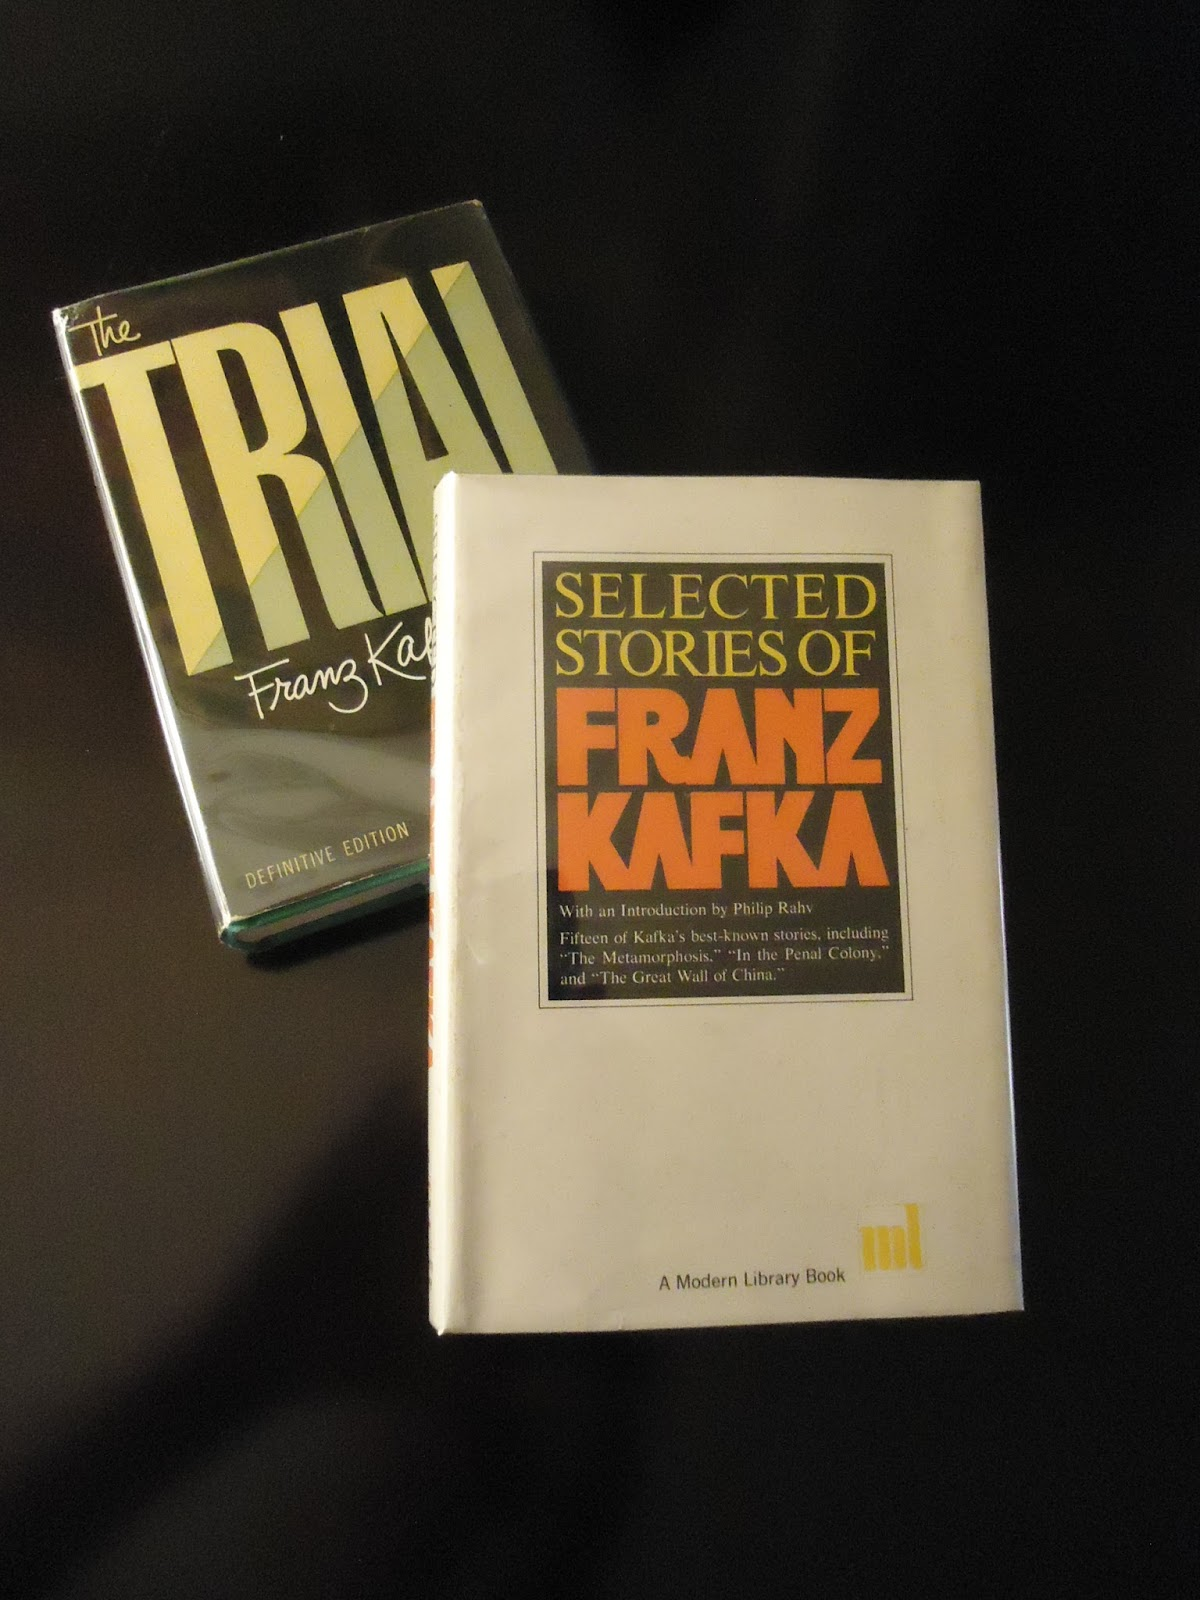 12 great books 65279the trial is the exception that proves the rules of great books by offering us limited character development and no plot like most of kafka s writing